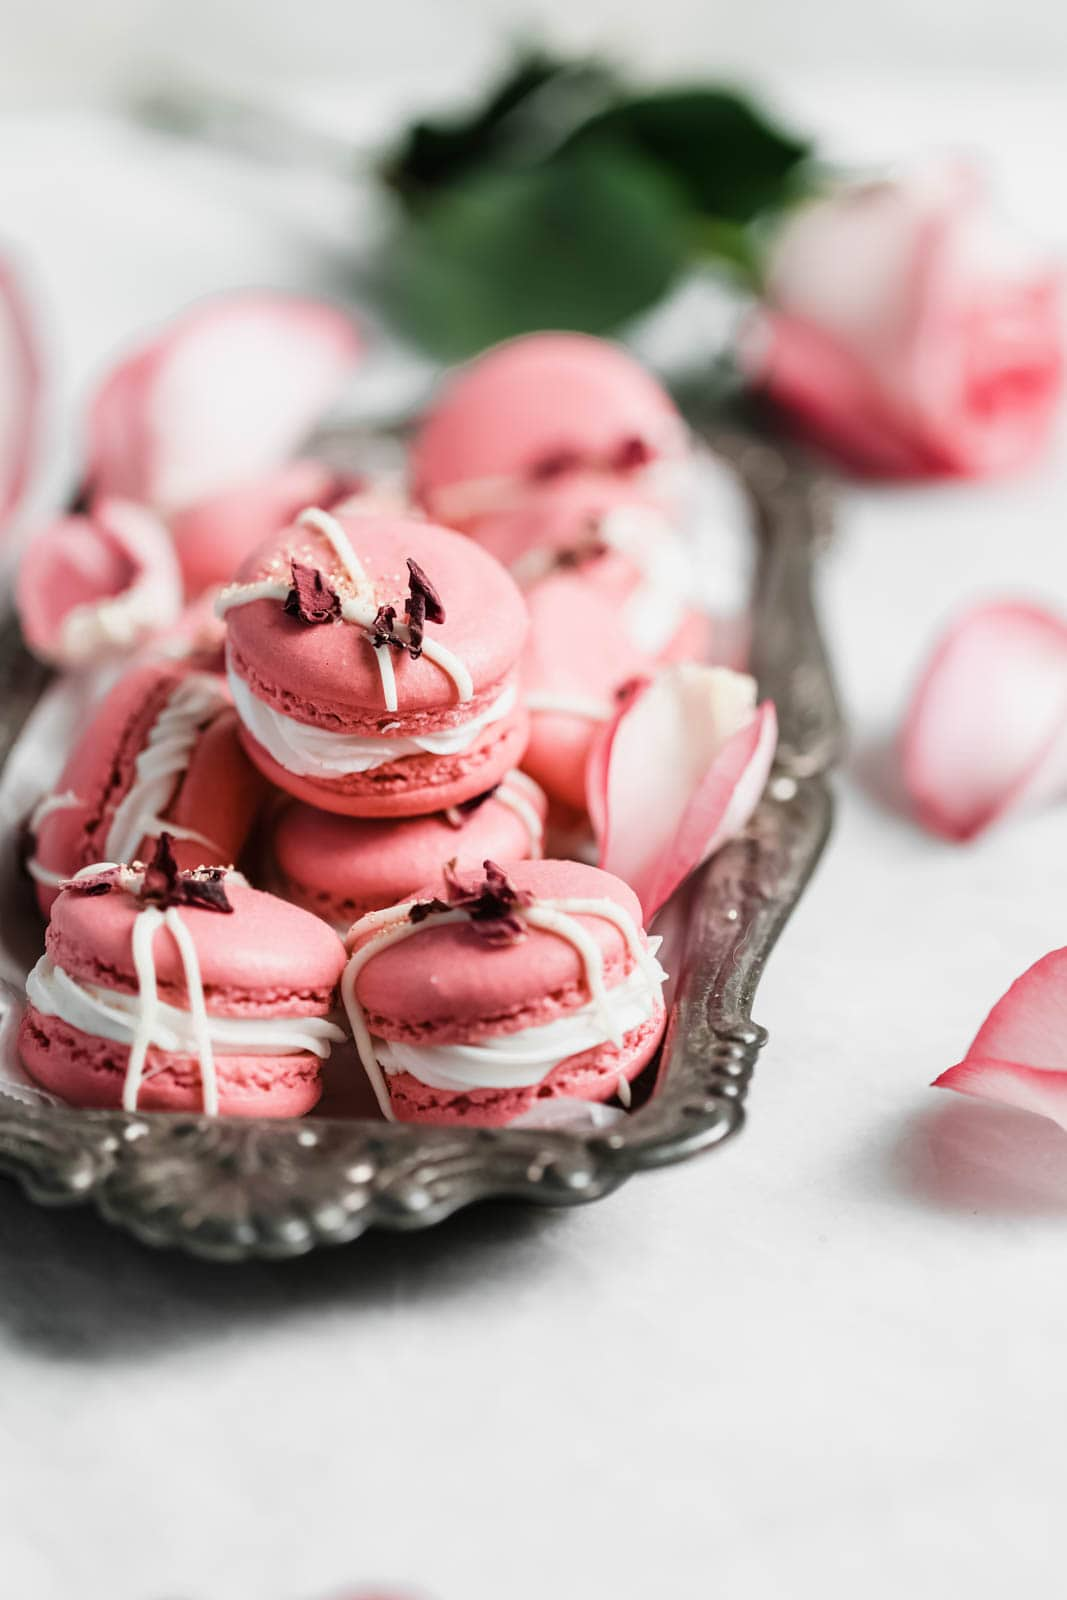 Raspberry Rose Macarons made with rosewater, a vanilla buttercream, and a surprise raspberry preserve center. Simple, elegant, and oh so delicious!!